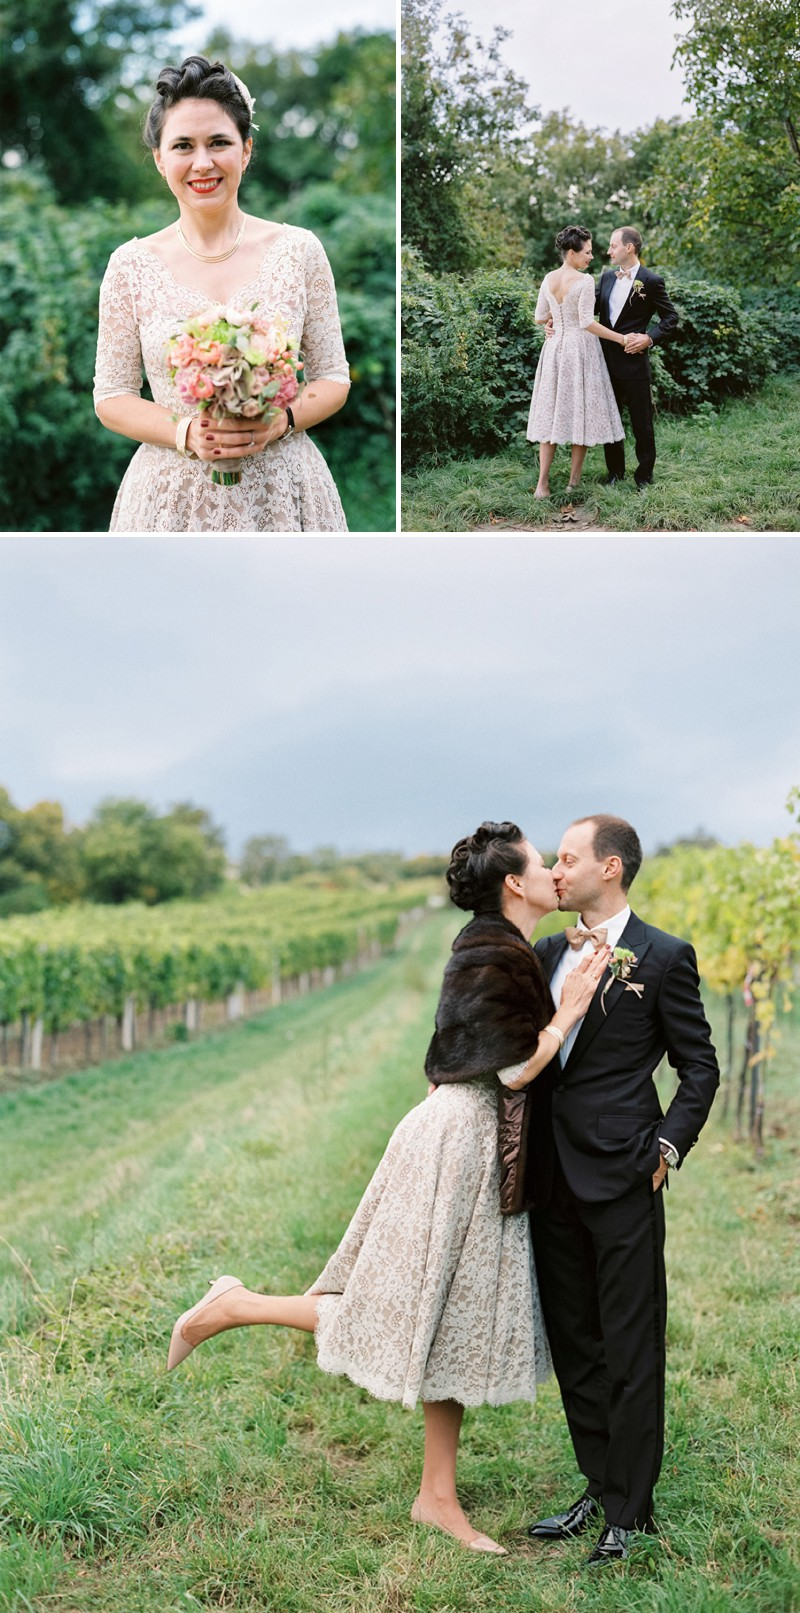 A Luxury And Intimate 1950s Style Autumn Wedding In Vienna With A Lena Hoschek Dress And Mink Stole And A Ranunculus Bouquet Photographed By Peaches & Mint._0010